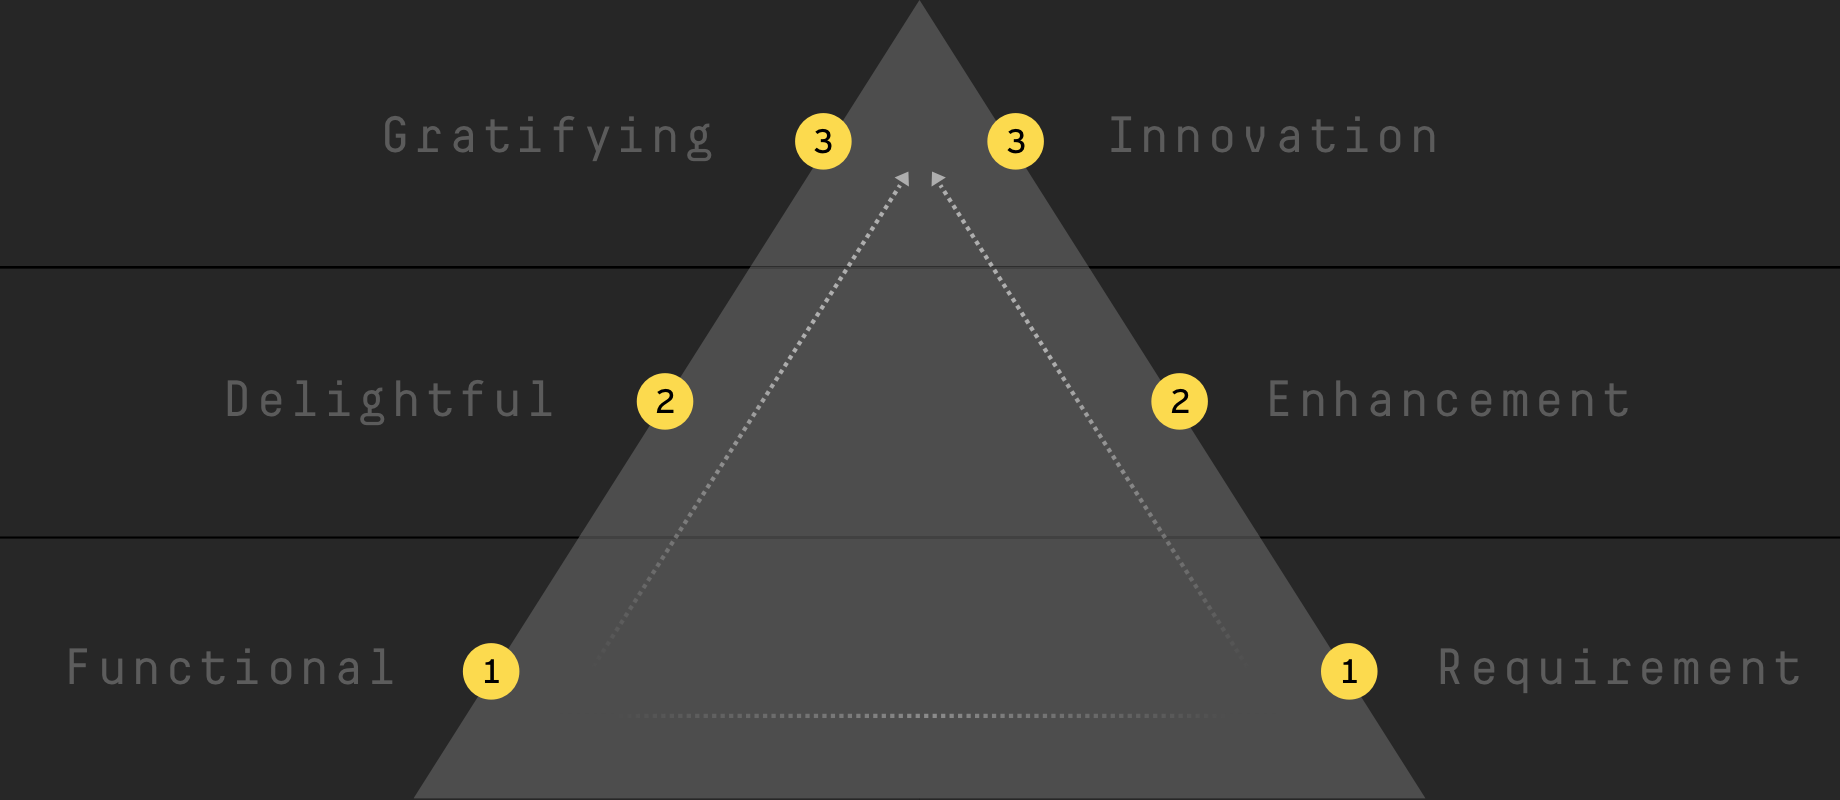 Function And Delight How To Facilitate Better Product Feature Ideation